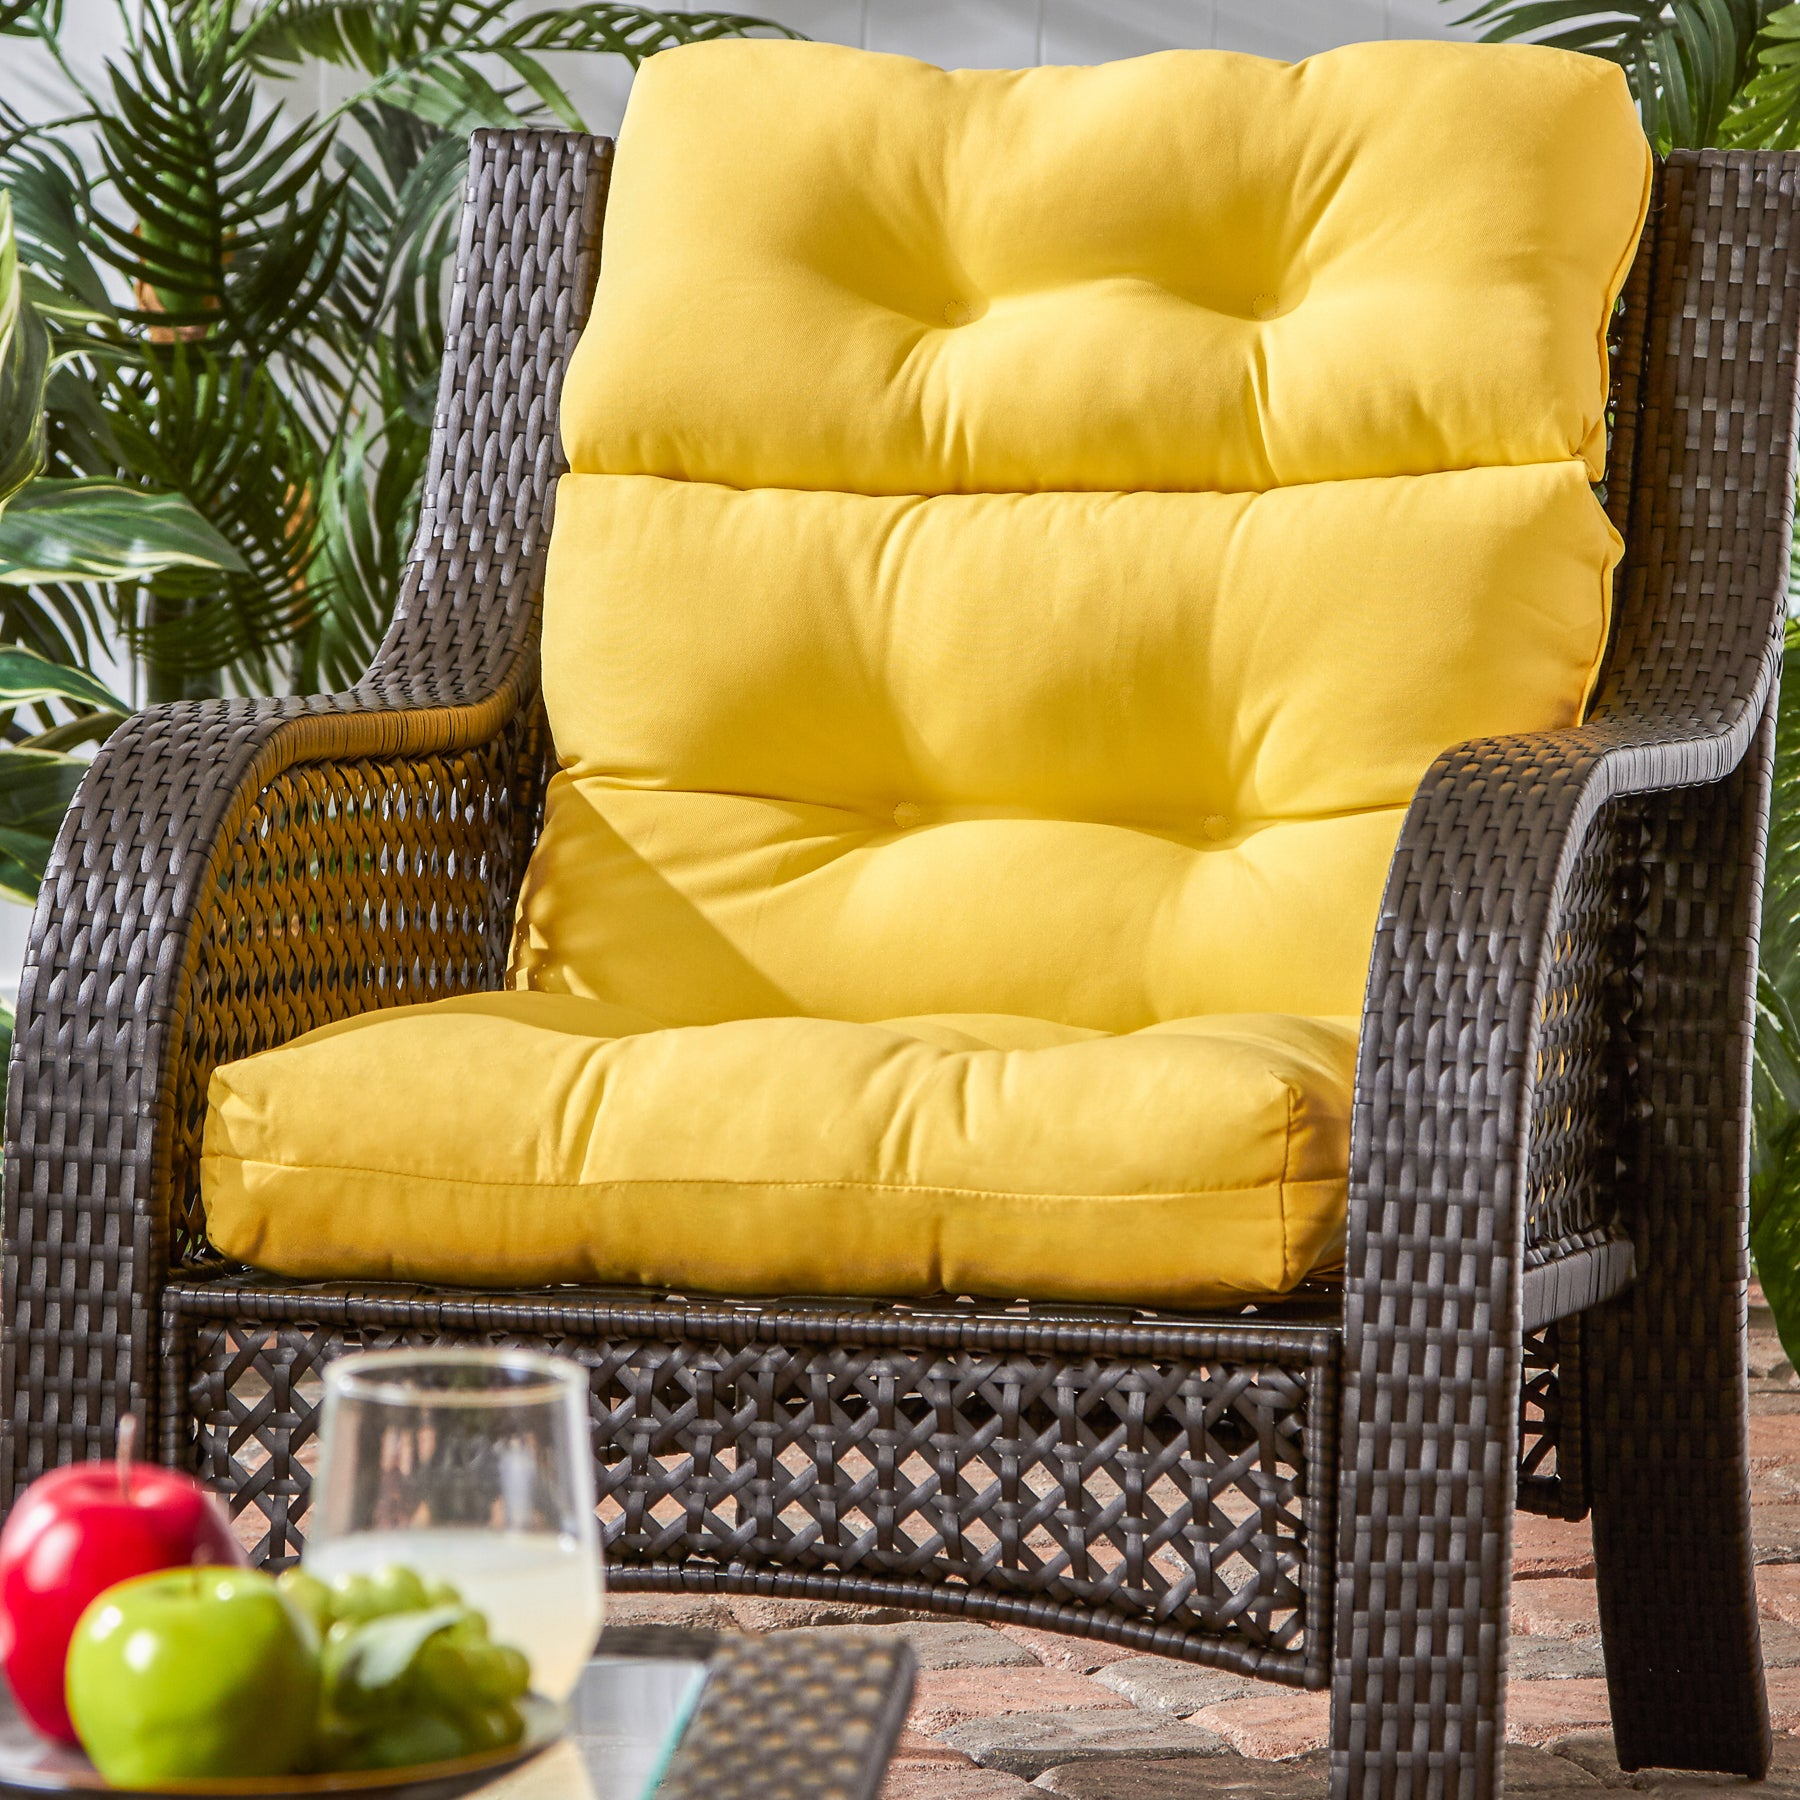 Greendale Home Fashions Sunbeam Outdoor High Back Chair Cushion   22w X 44l